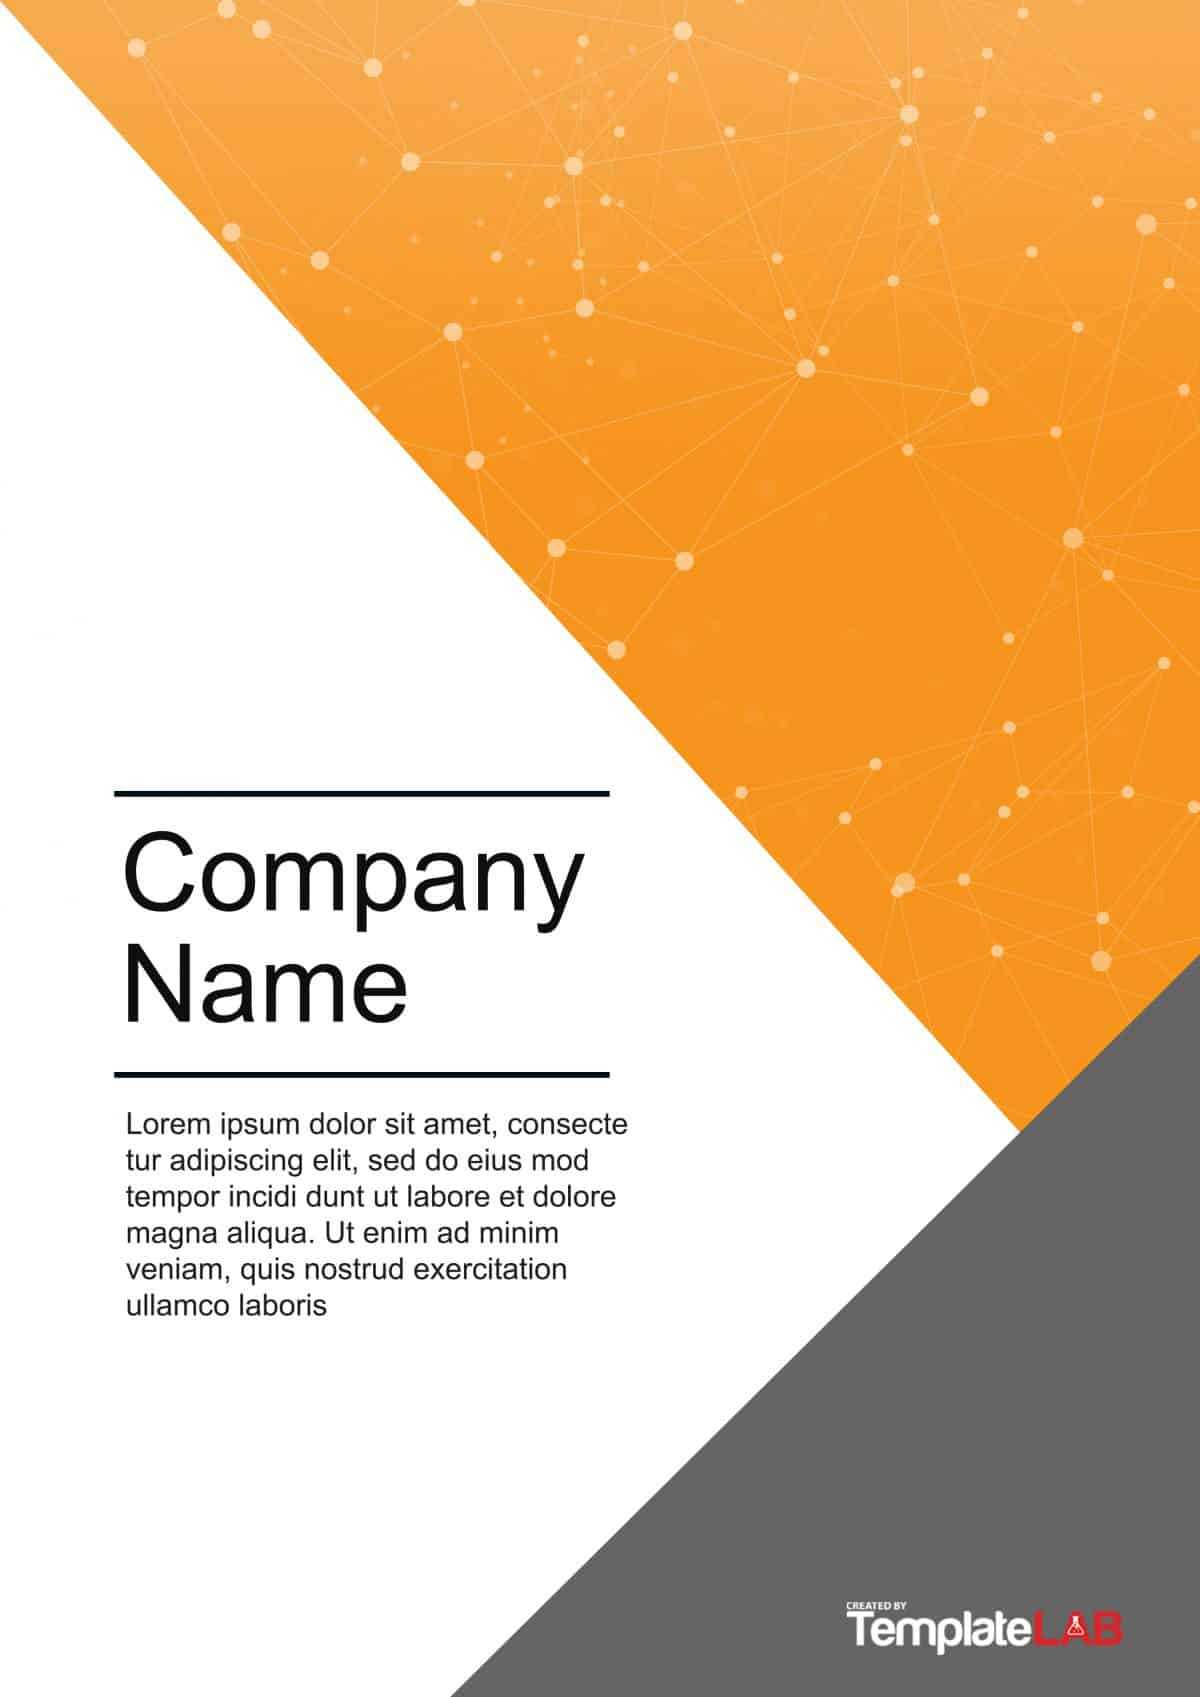 39 Amazing Cover Page Templates (Word + Psd) ᐅ Templatelab Within Word Title Page Templates